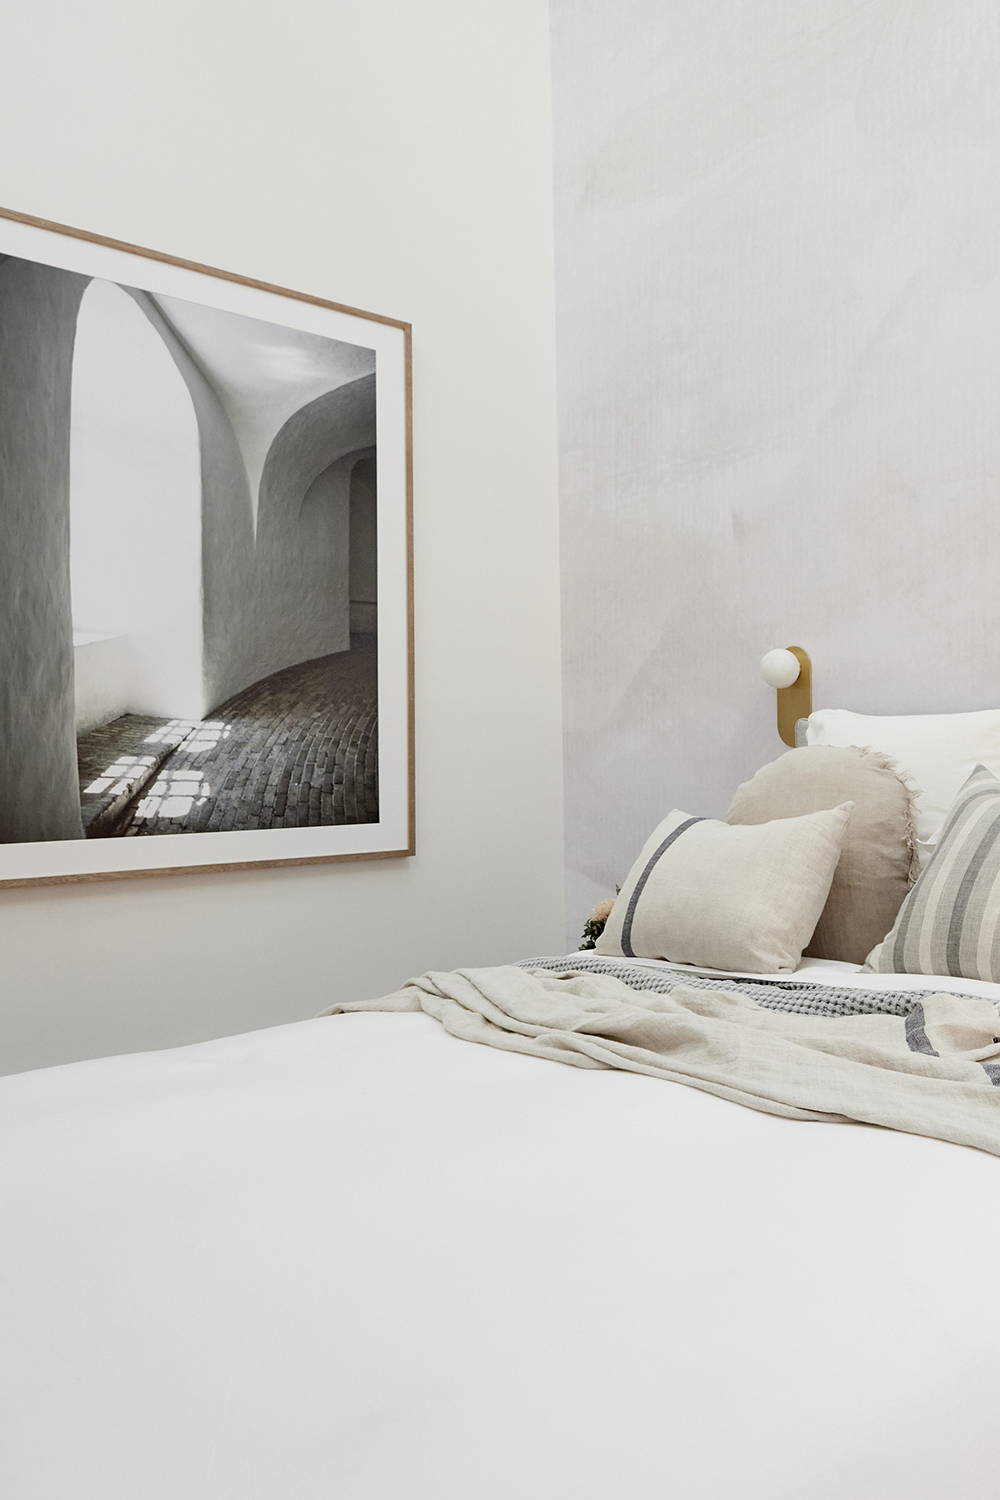 Framed Print in Ronnie and Georgia's The Block Guest Bedroom - A neutral bedroom interior with a moody framed artwork framed in oak